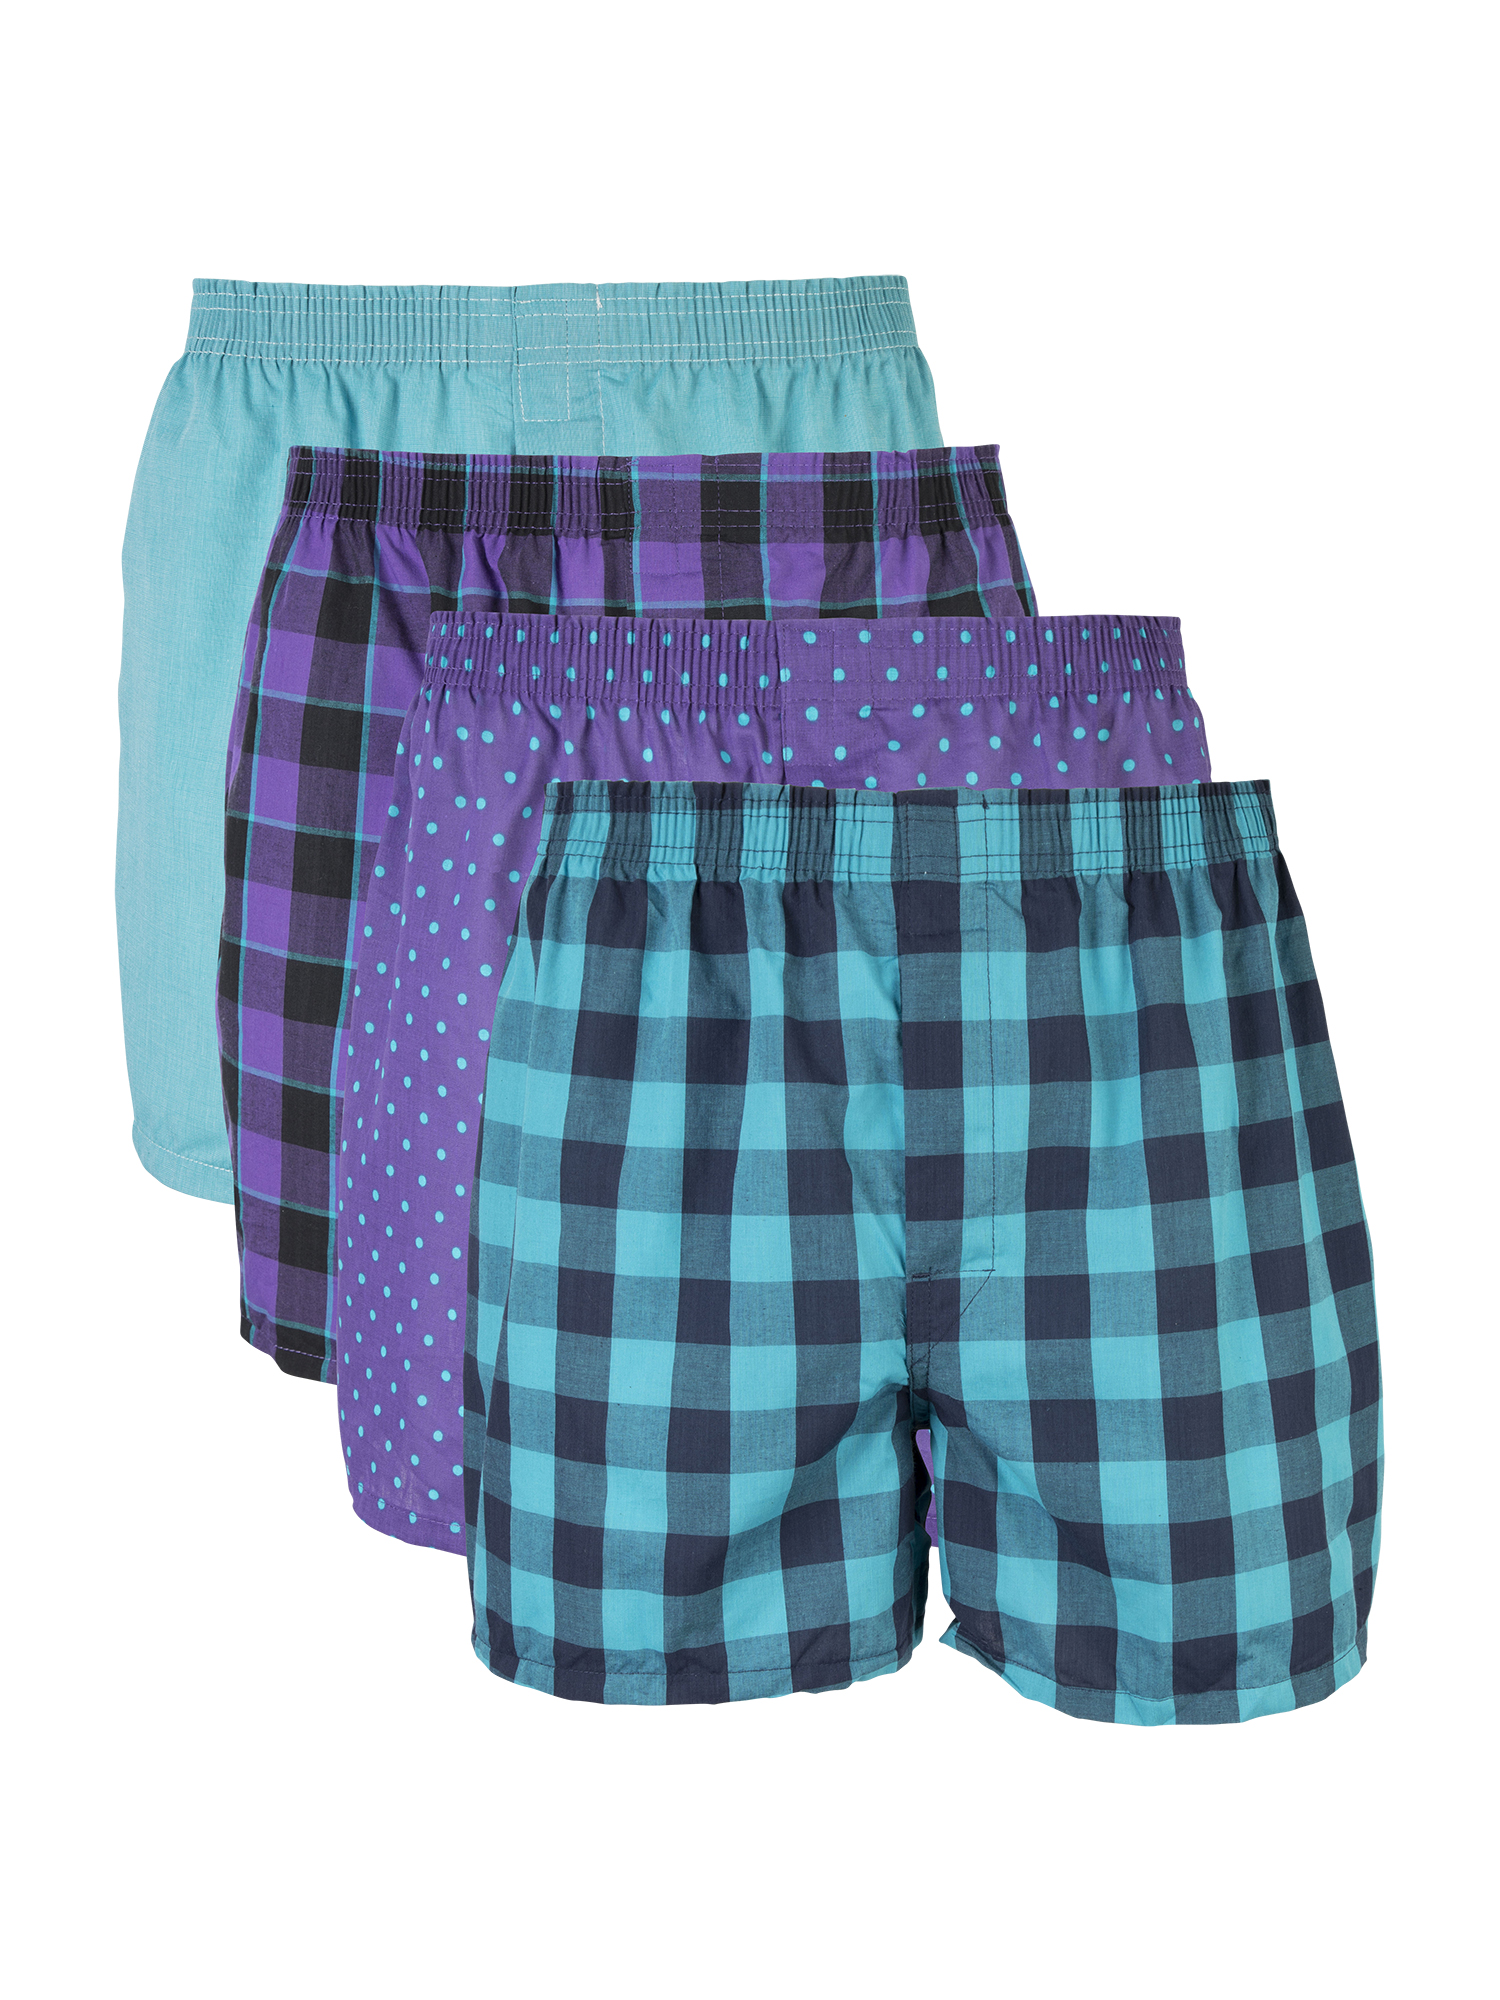 Pack Of 2 Childrens//Kids Boys 100/% Cotton Doctor Who Dalek Boxer Shorts Underwear